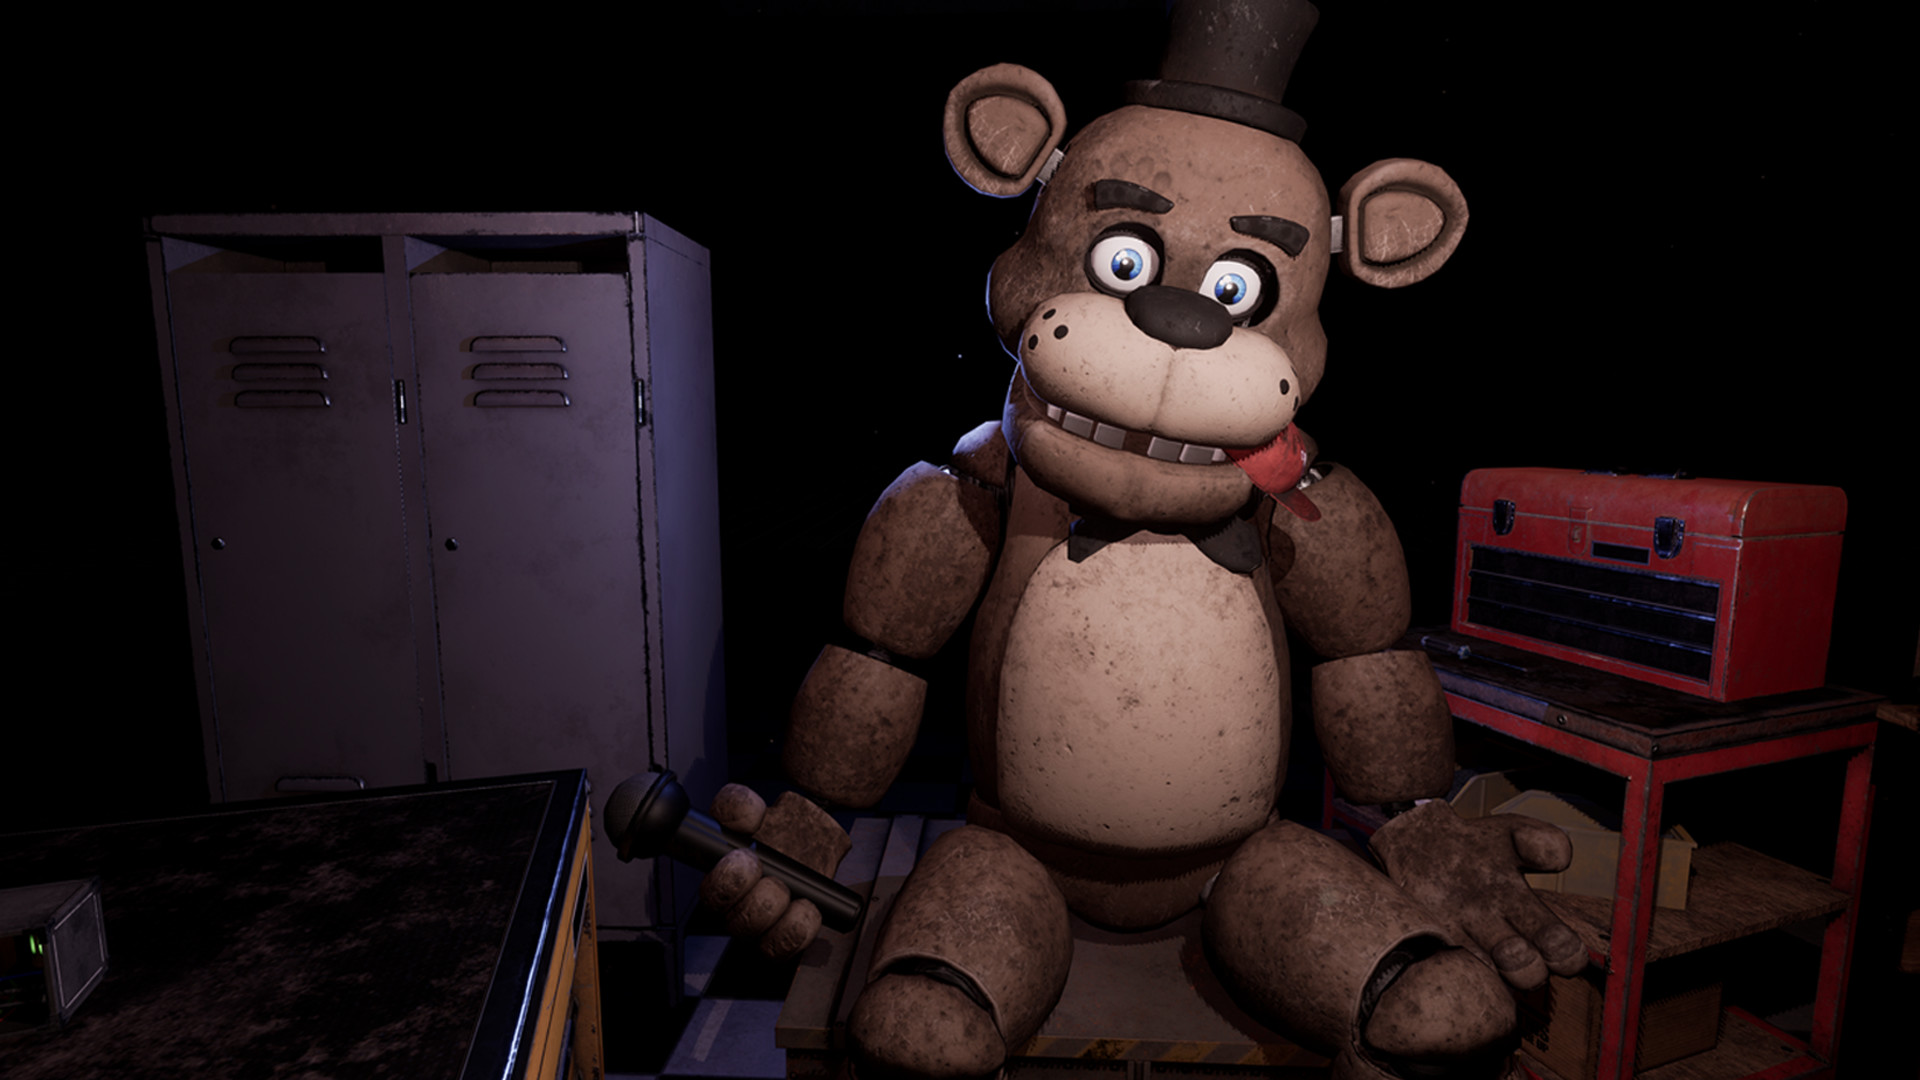 Five Nights At Freddy S Creator Launches A New Project To Release The Most Popular Fangames Gamesradar